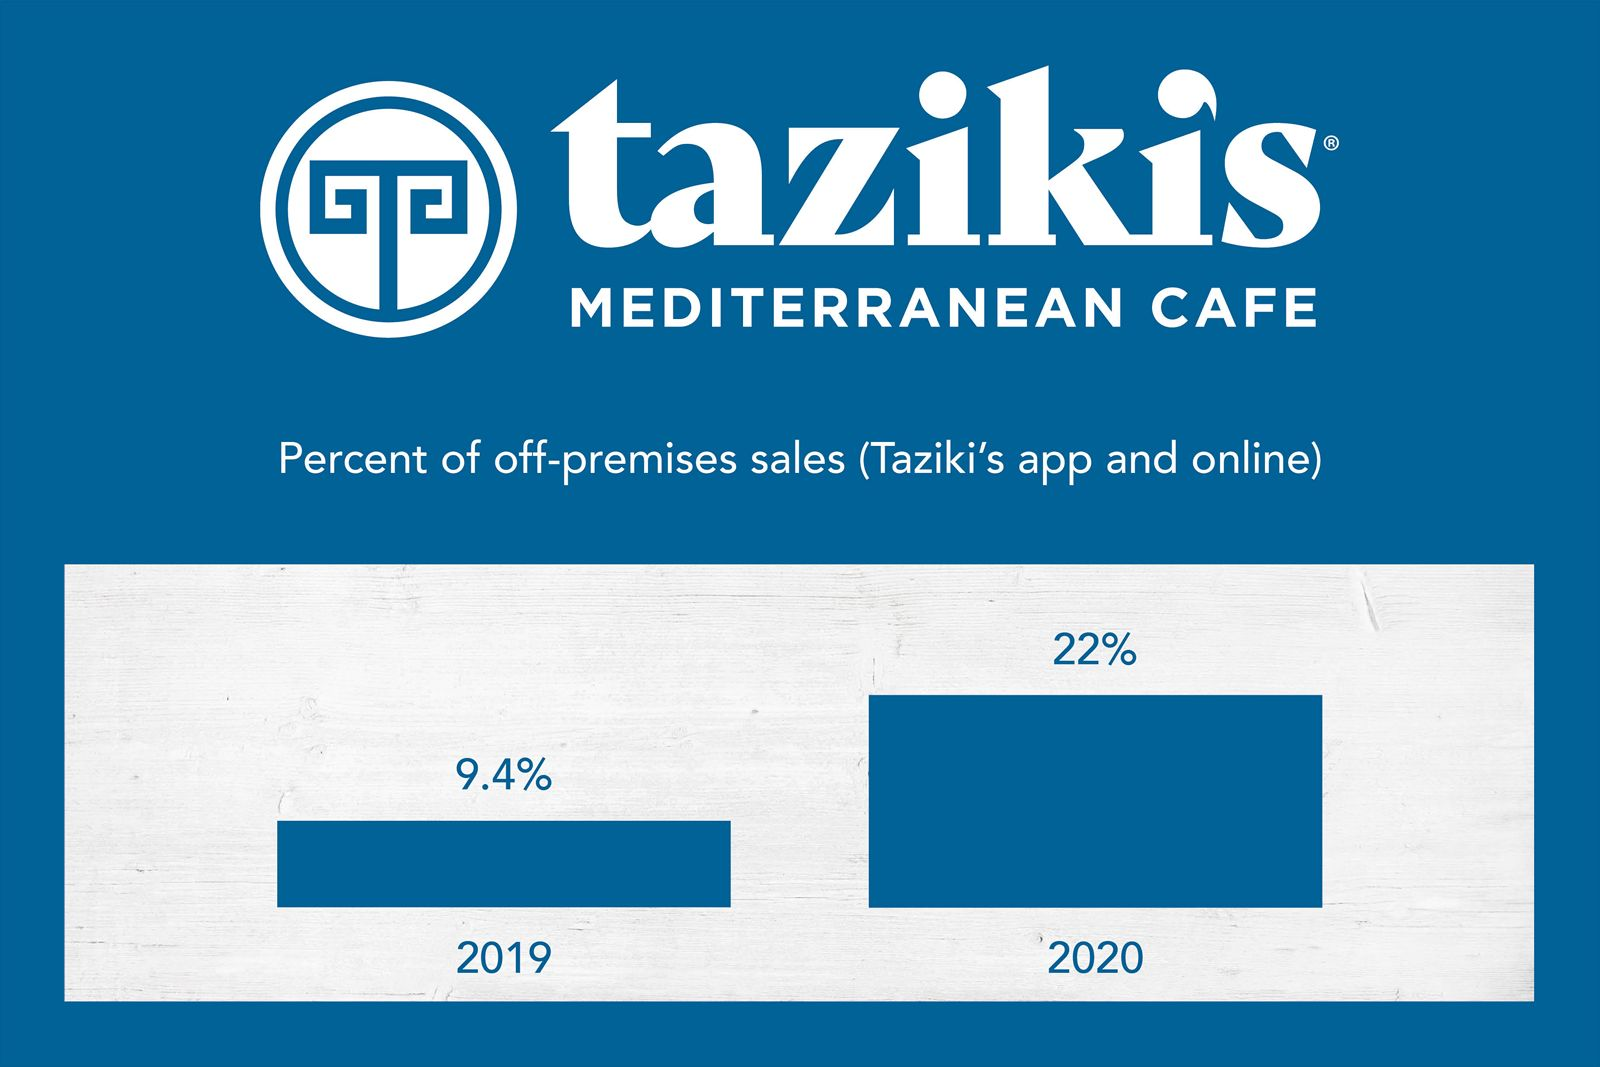 Taziki's Mediterranean Café Announces New Branding and Additional Customer Offerings in 2021